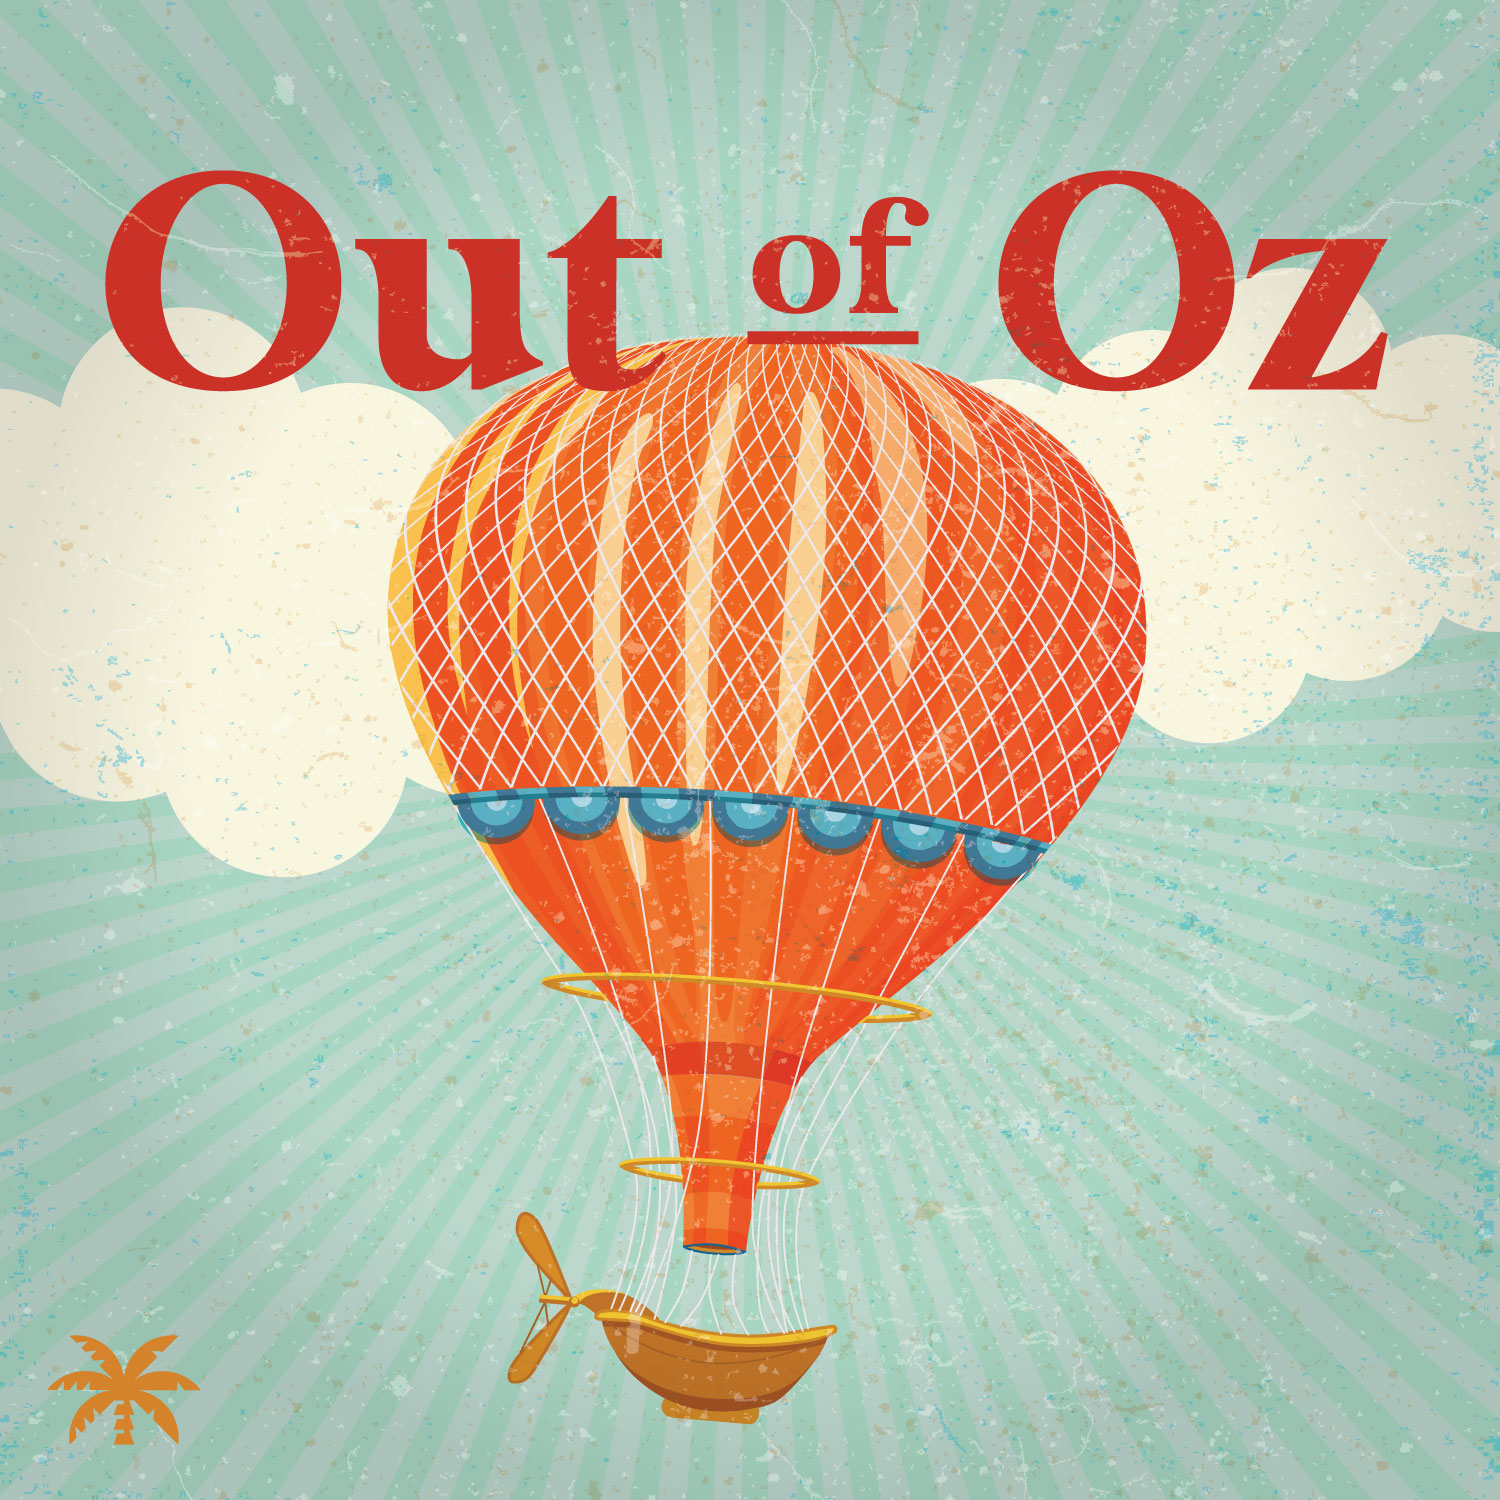 out-of-oz